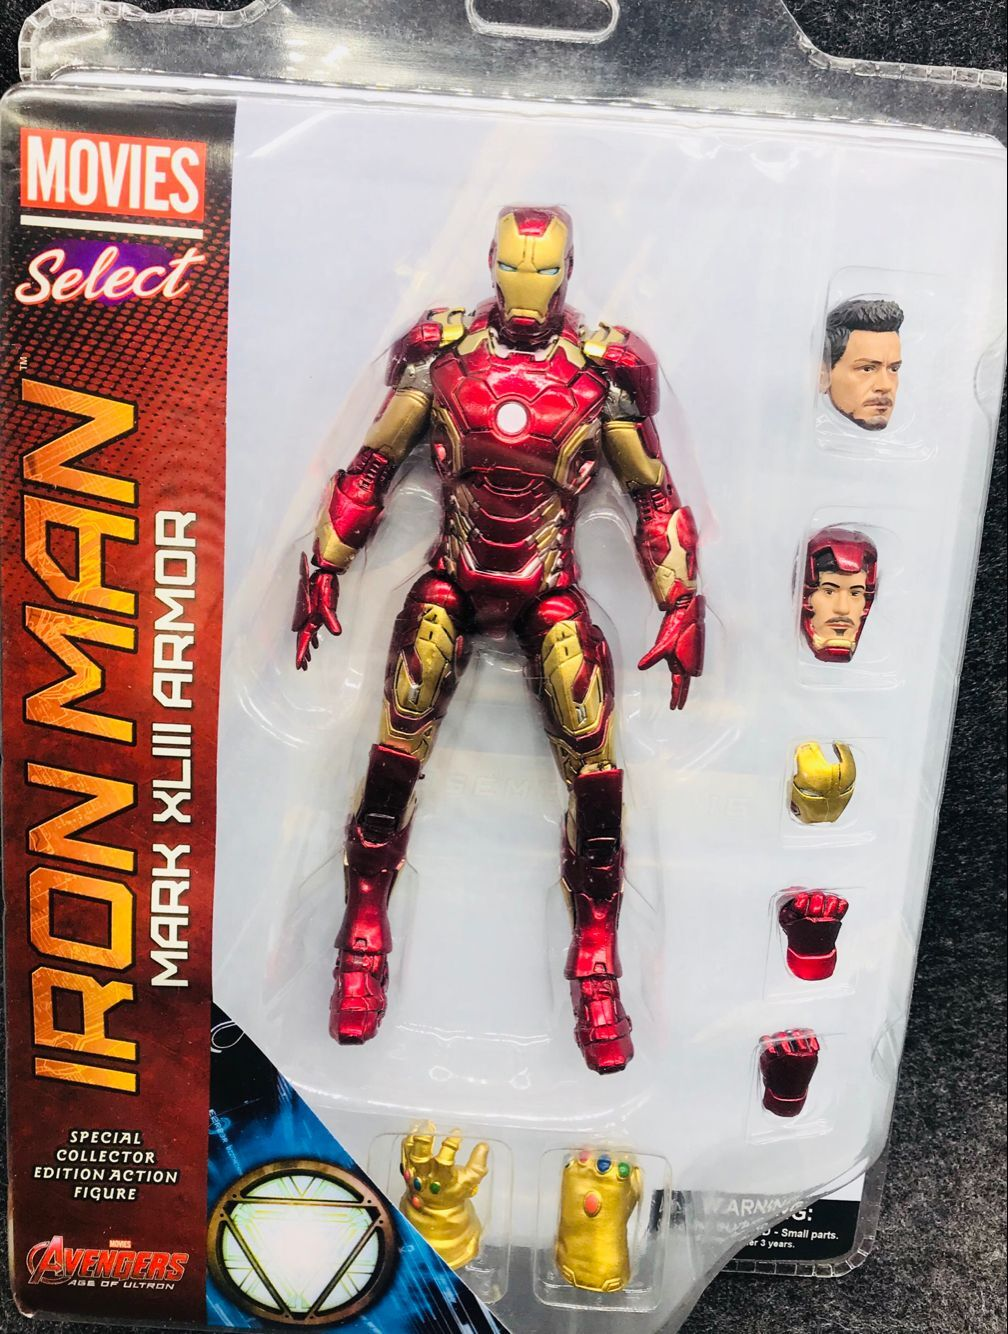 Original Marvel Select Avengers Ironman Mark 45 Super Hero Iron Man Action Figure Model Toys 18cm the avengers egg attack iron man patriot a i m ver super hero pvc ironman action figure collection model toy gift 18cm